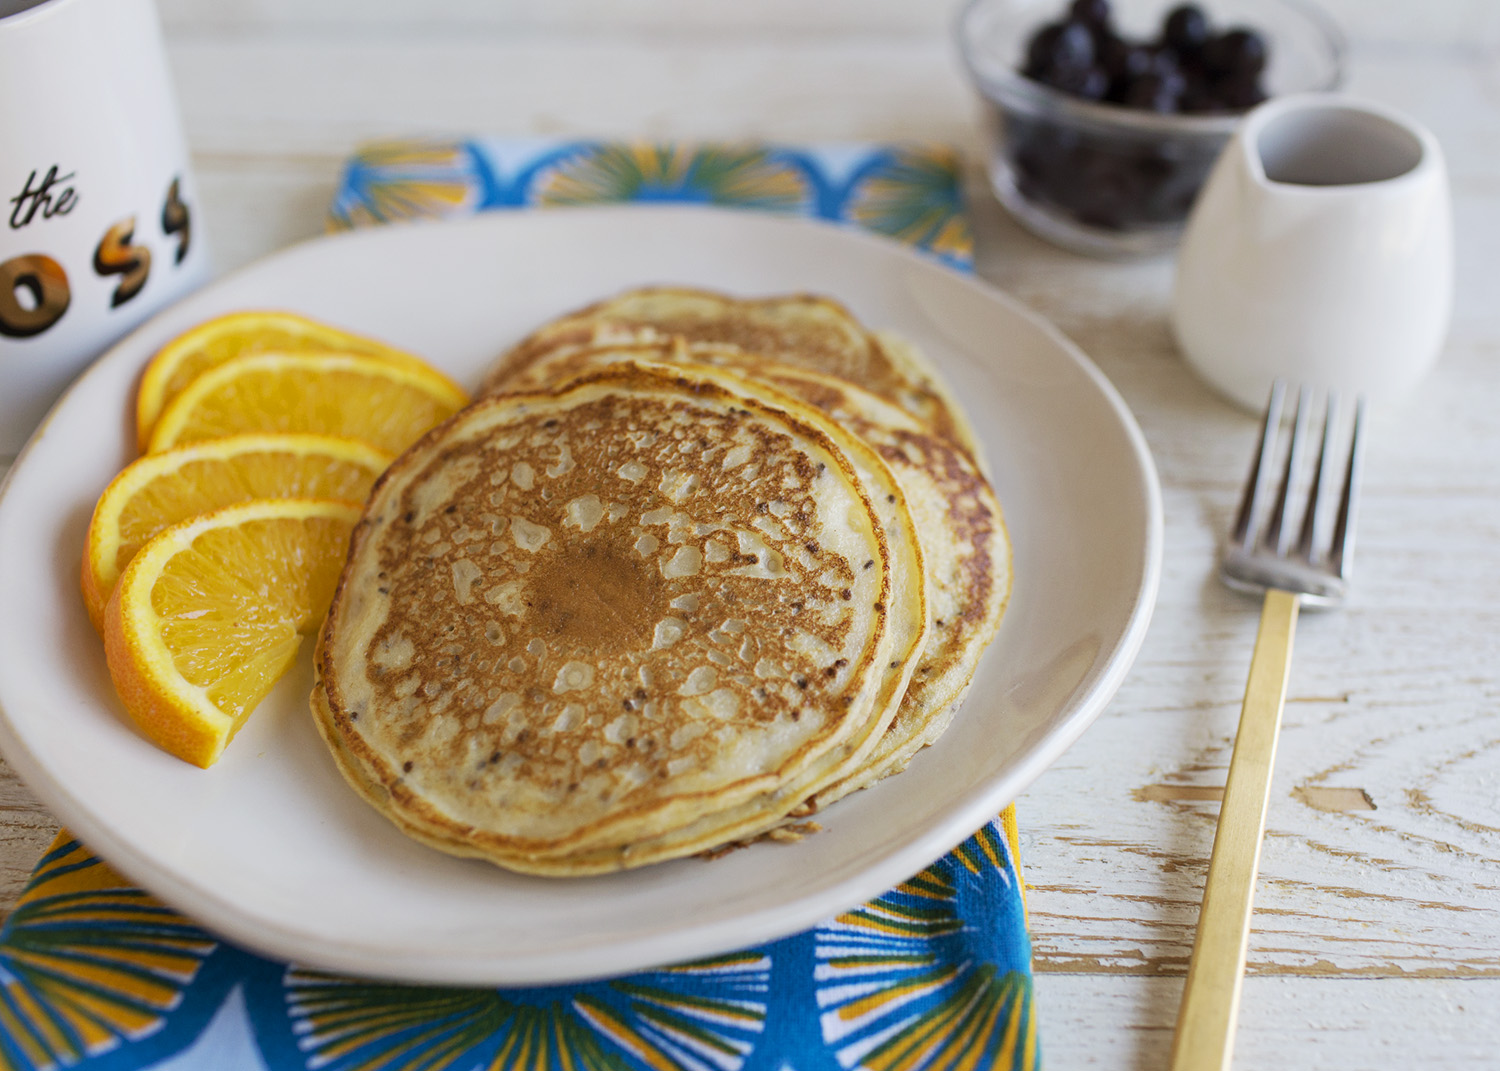 Banana and Chia Seed Blender Pancakes (via abeautifulmess.com)